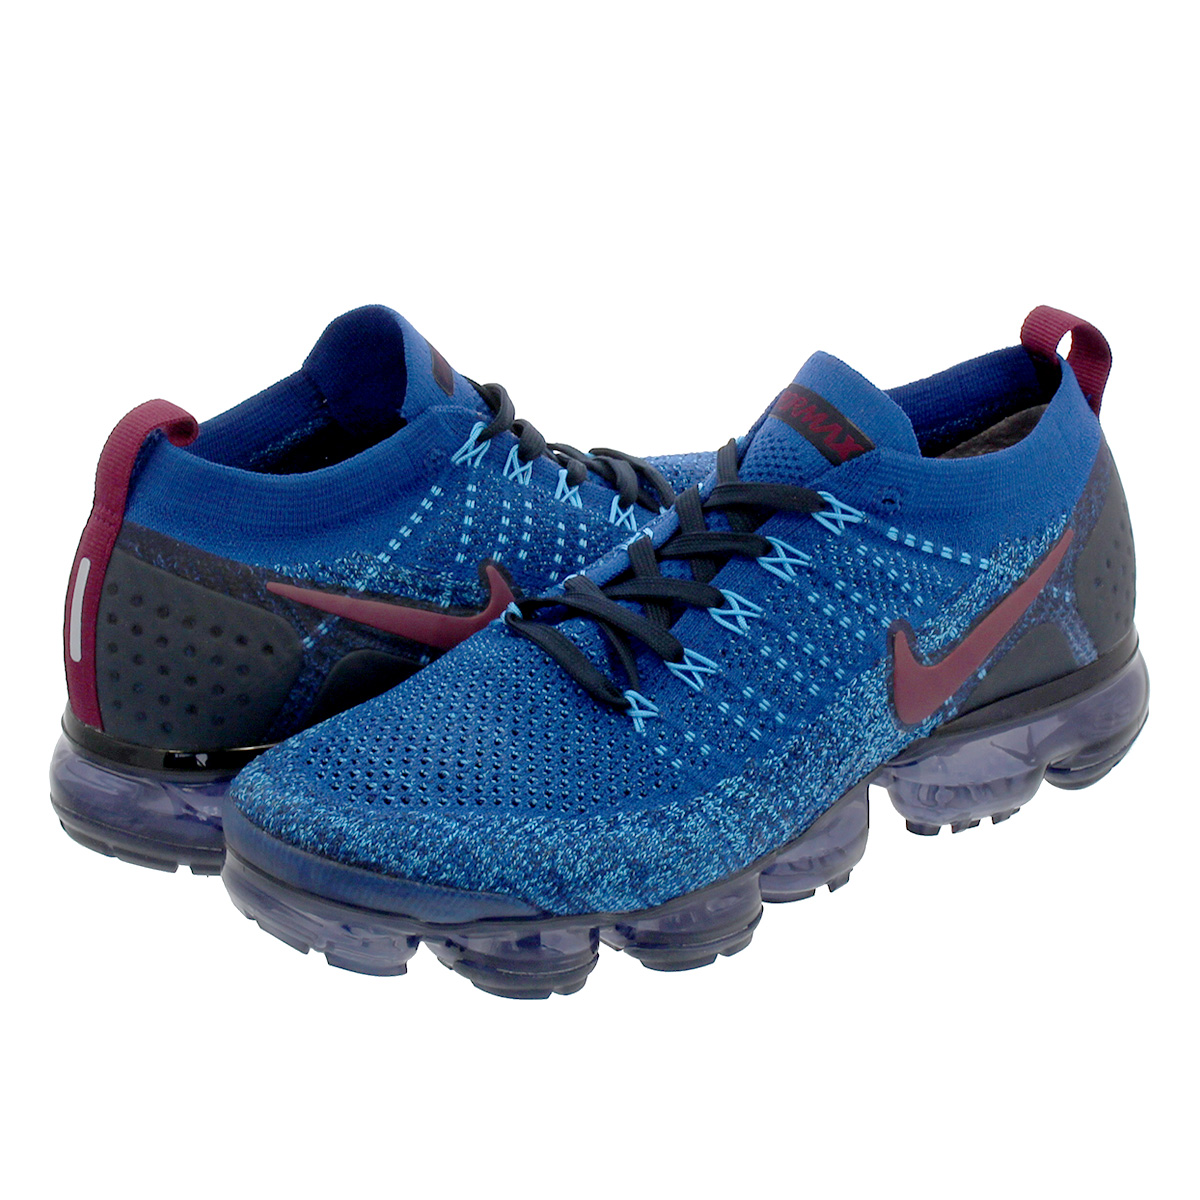 on sale 5f665 18458 NIKE AIR VAPORMAX FLYKNIT 2 Nike vapor max fried food knit 2 GYM  BLUE/BORDEAUX/COLLEGE NAVY/BLUE GLOW 942,842-401